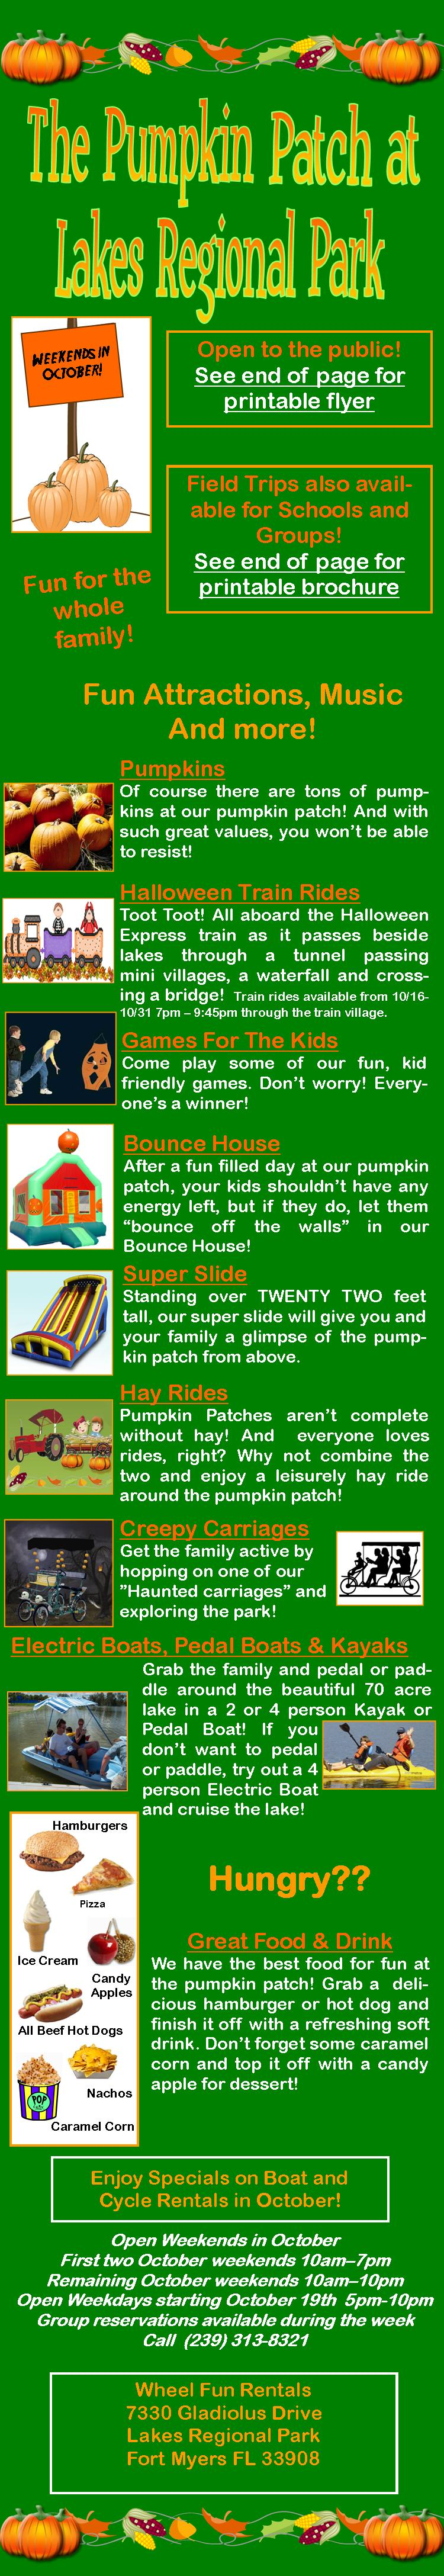 Lakes Regional Park Pumpkin Patch